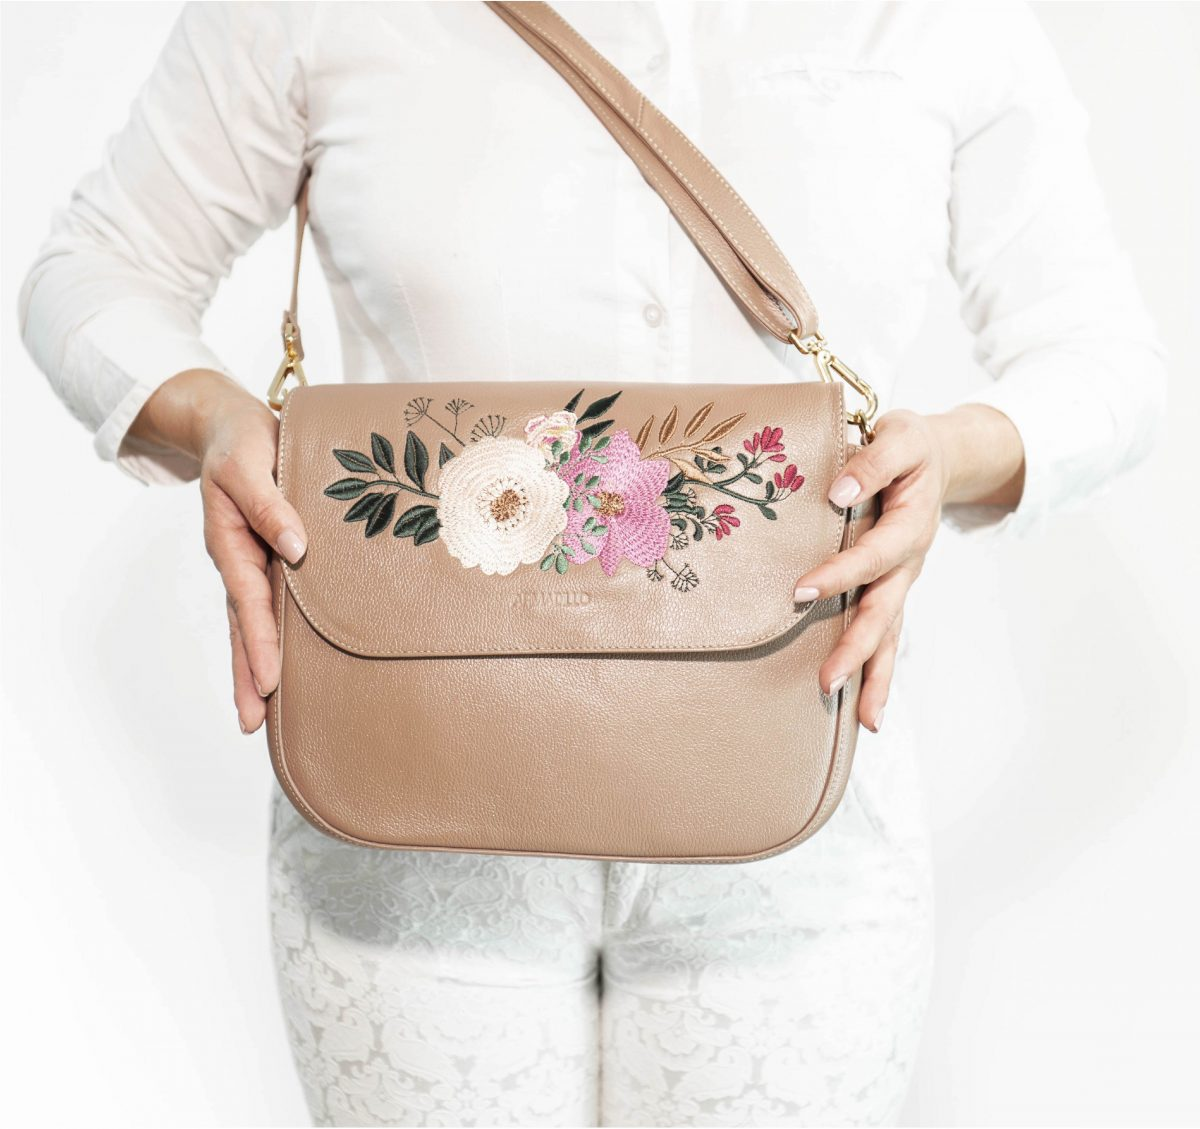 armadillo-leather-handbags-totes-wallets-clutches-backpack-small-leather-goods-accessories-office-travel-gifts-in-canada-nona-embroidery-almond-tan